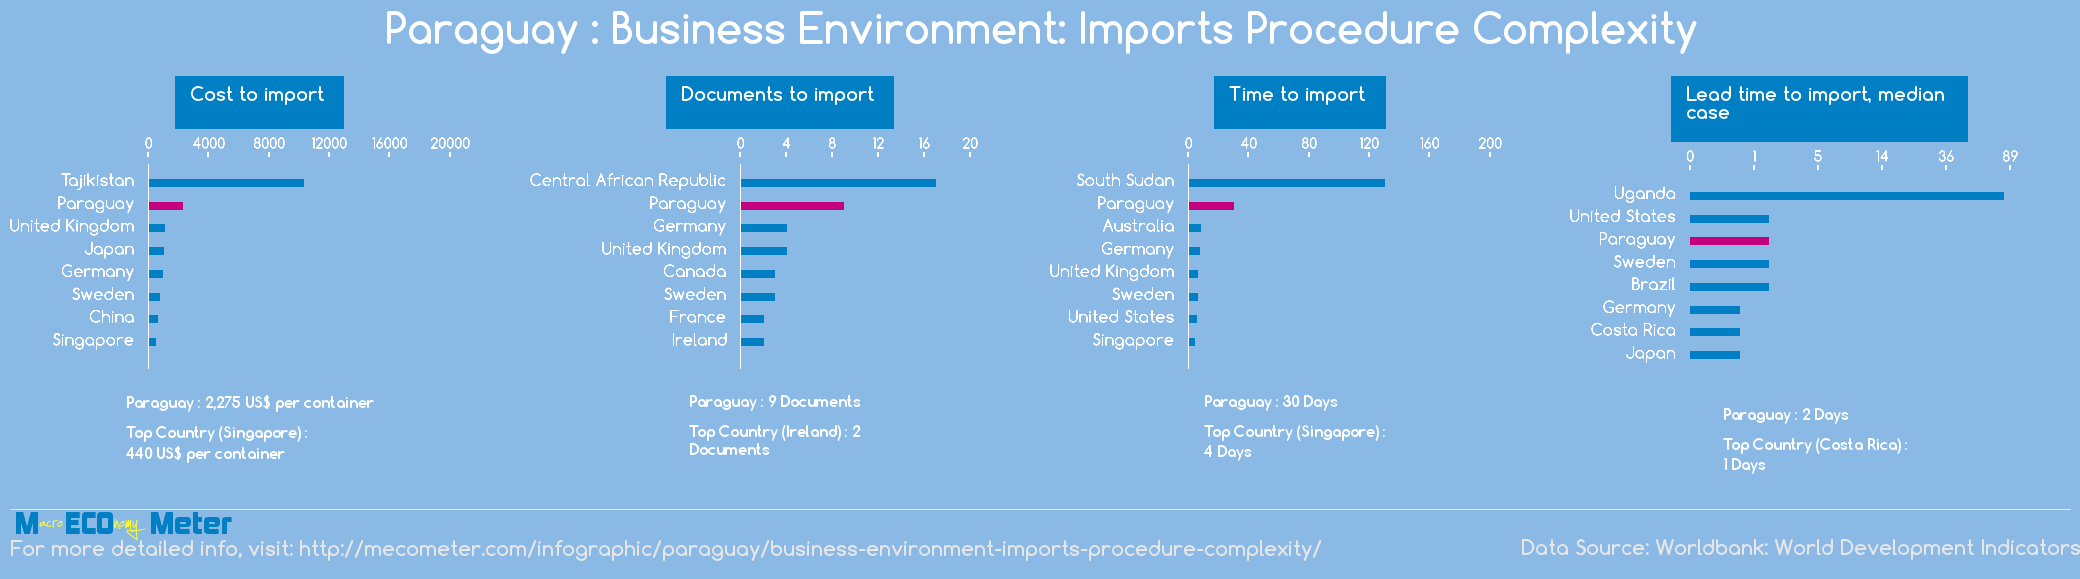 Paraguay : Business Environment: Imports Procedure Complexity